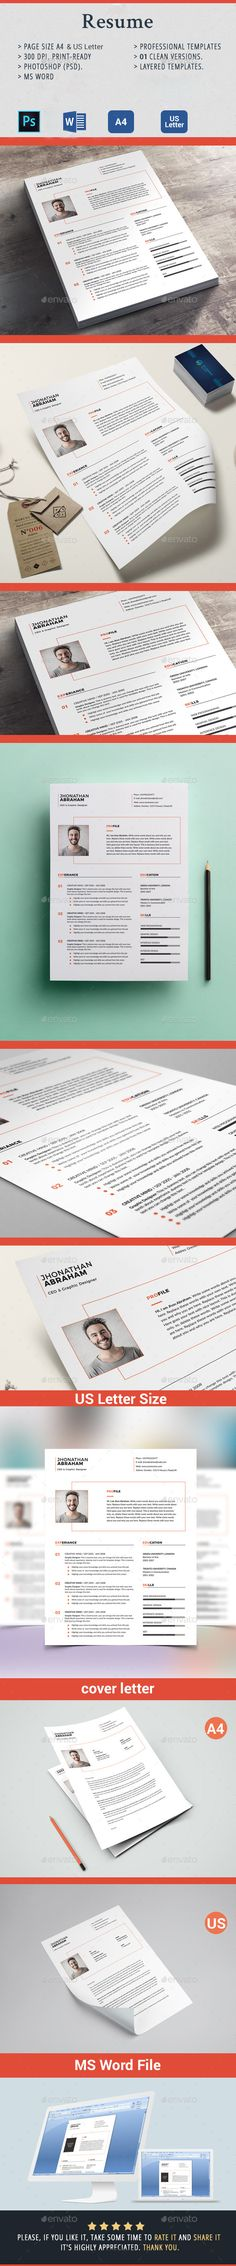 CV #Template - #Resumes Stationery Download here